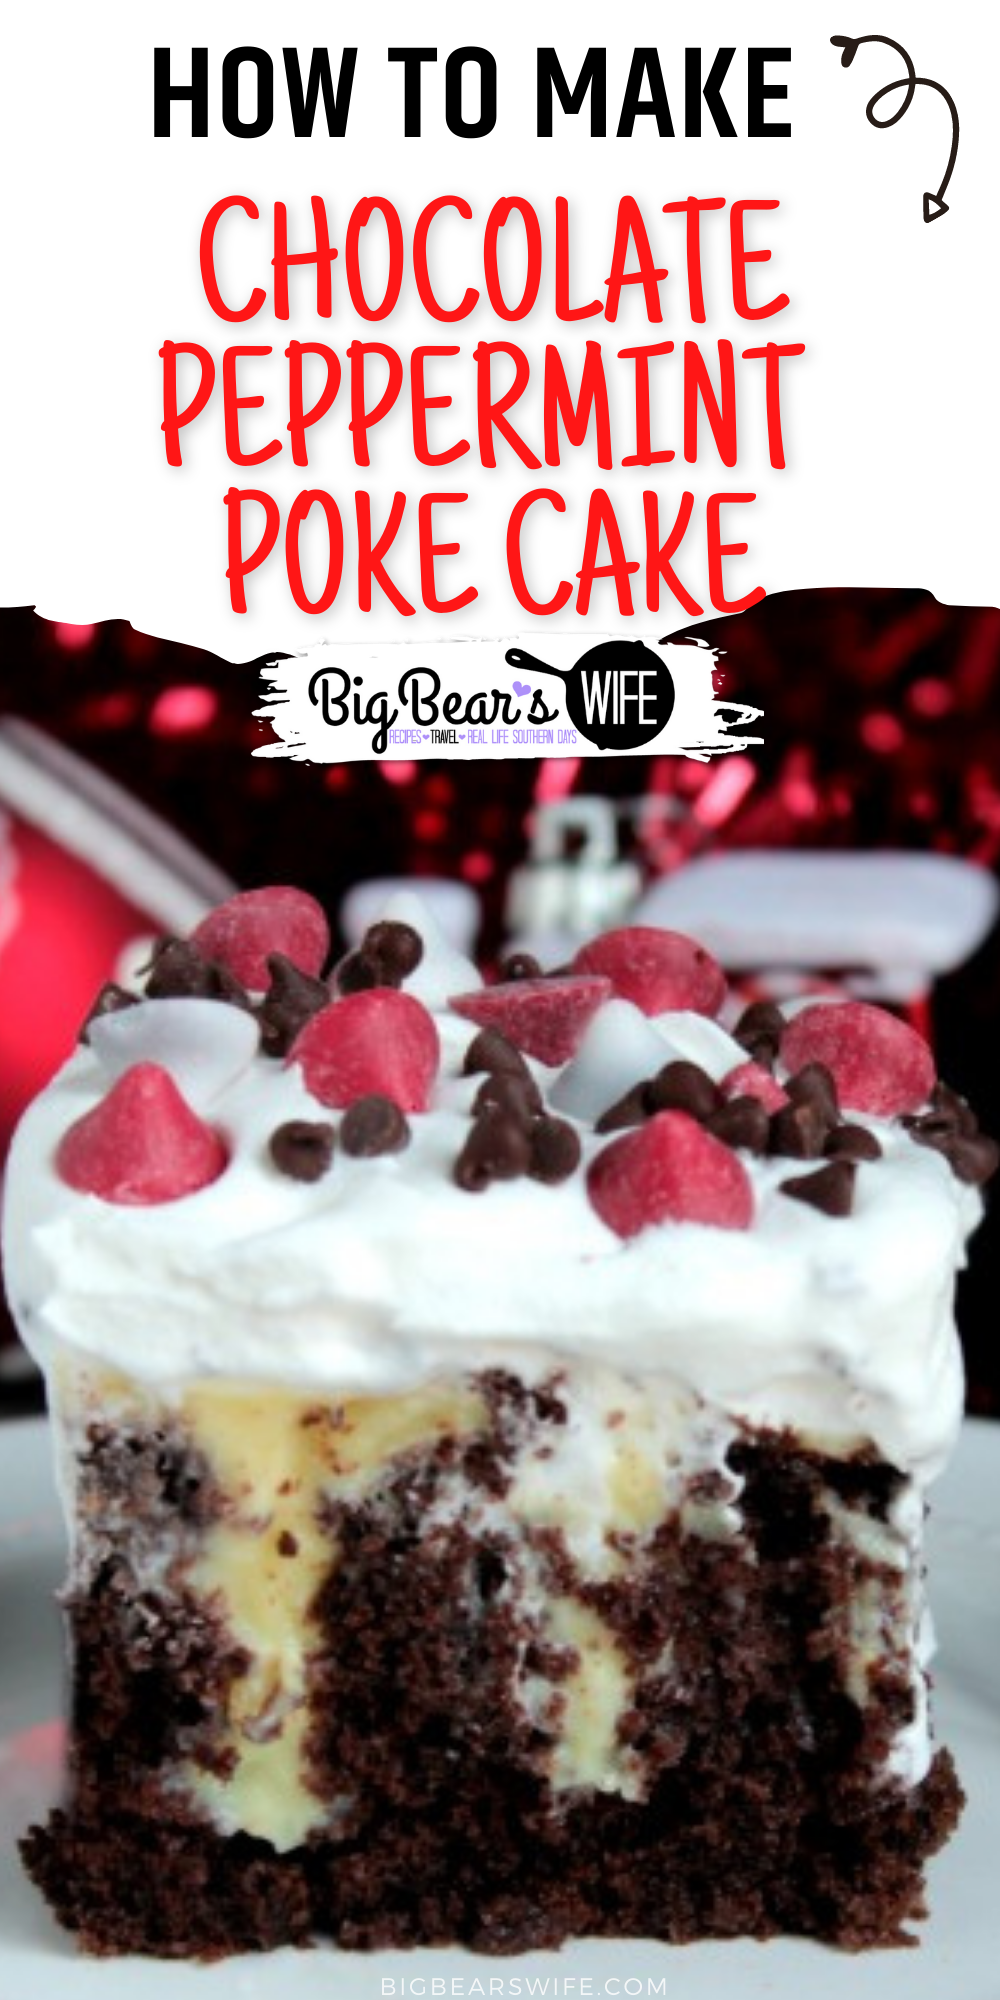 Chocolate Peppermint Poke Cake is filled with everything you love about the holidays but it's also easy enough to make without any fuss! via @bigbearswife